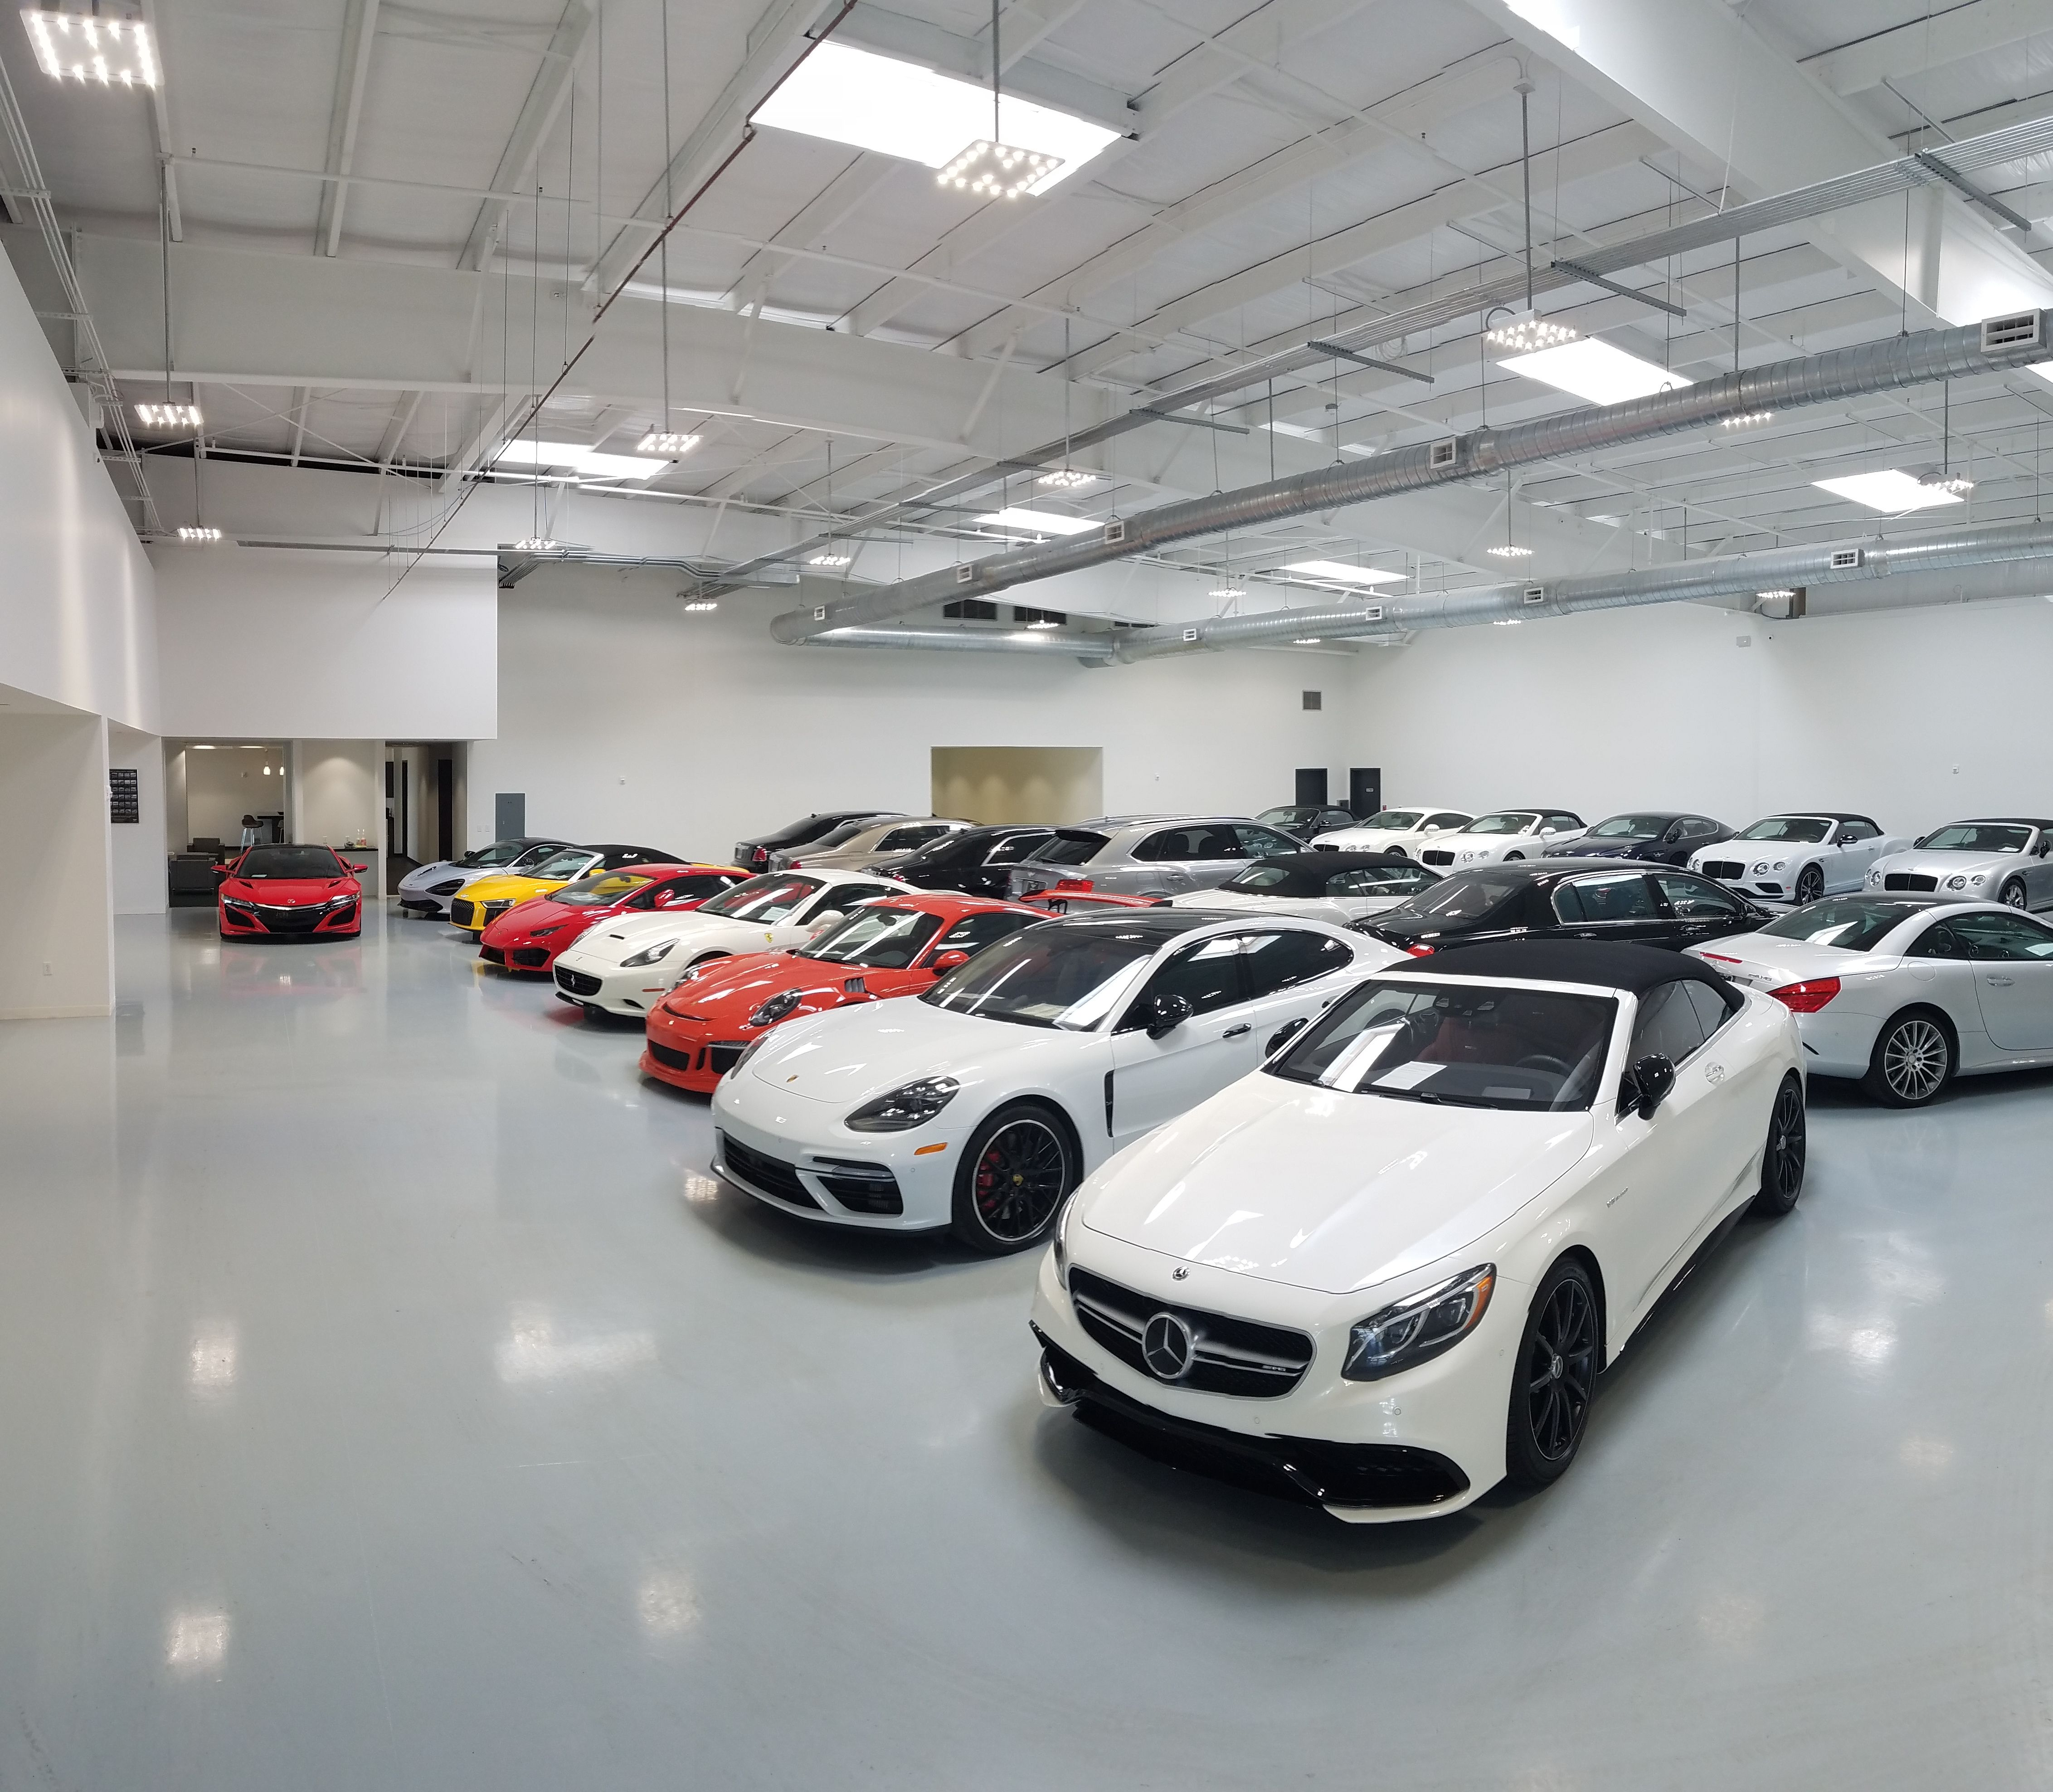 Come Visit The All New Fields Motorcars Orlando Hangar Florida S Largest Indoor Collection Of Exclusive High Used Luxury Cars Luxury Cars Rolls Royce Models